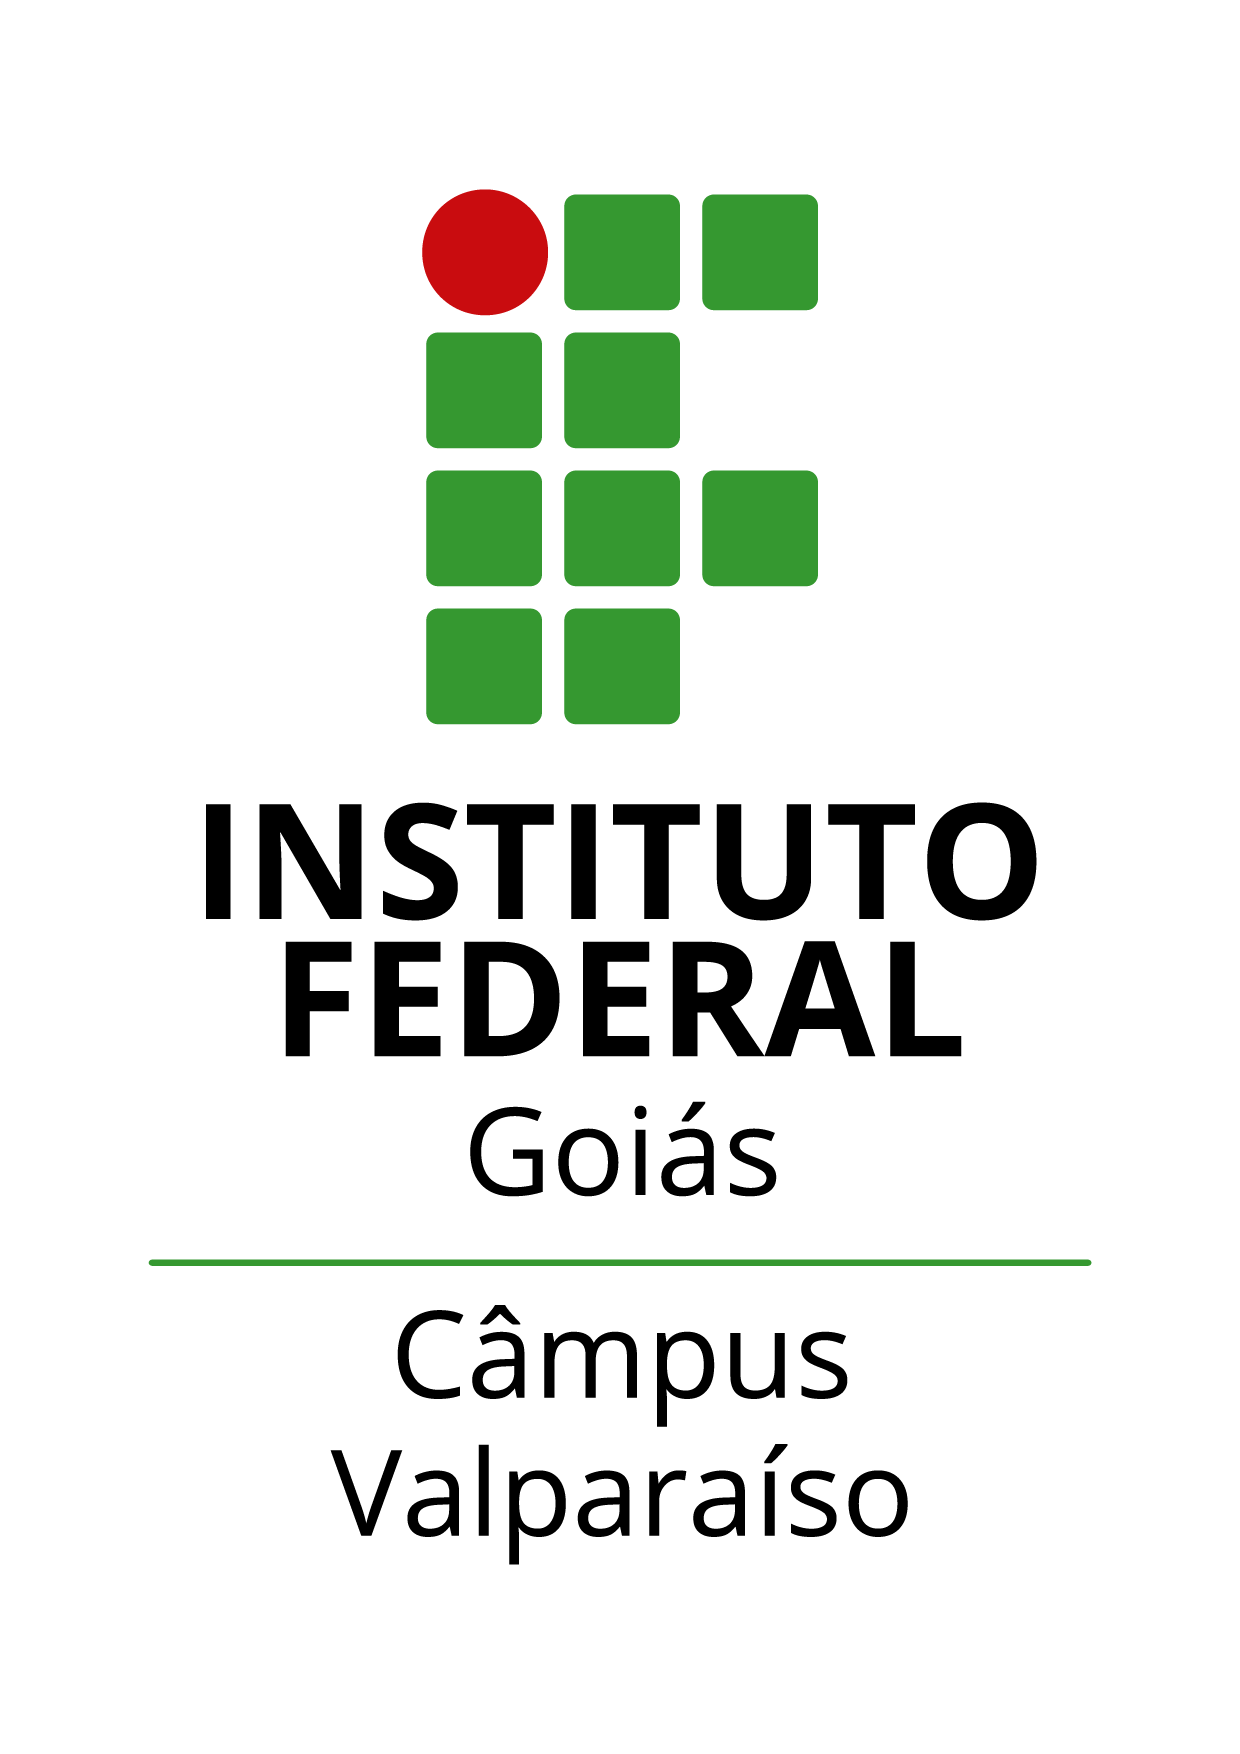 Logo do IFG - Câmpus Valparaíso